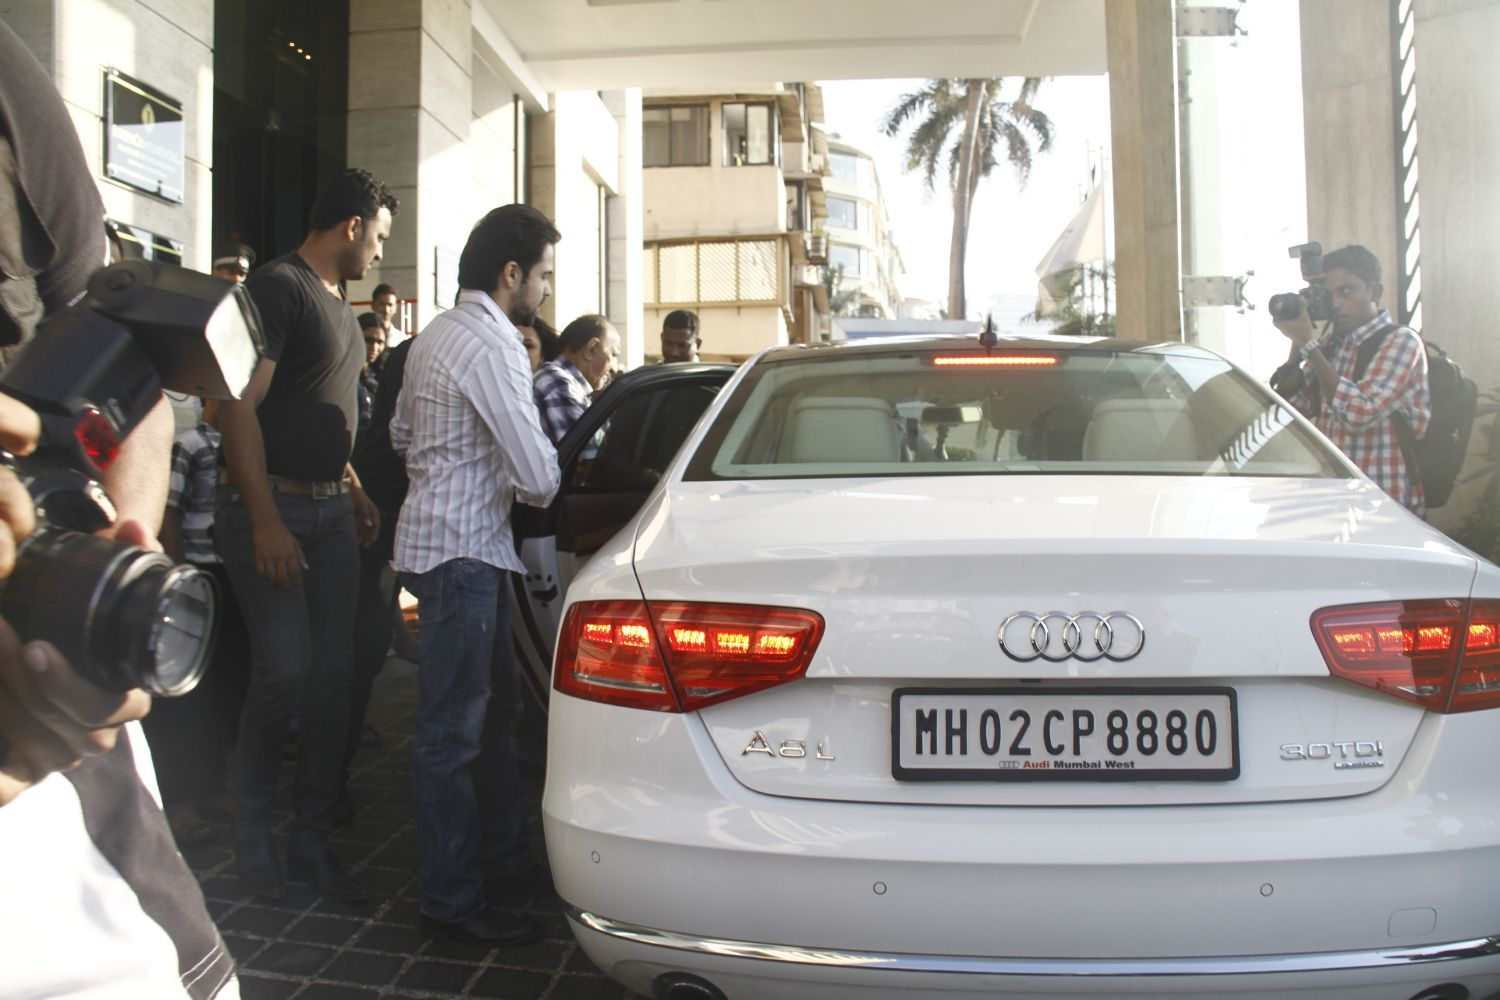 photo of Emraan Hashmi Audi - car